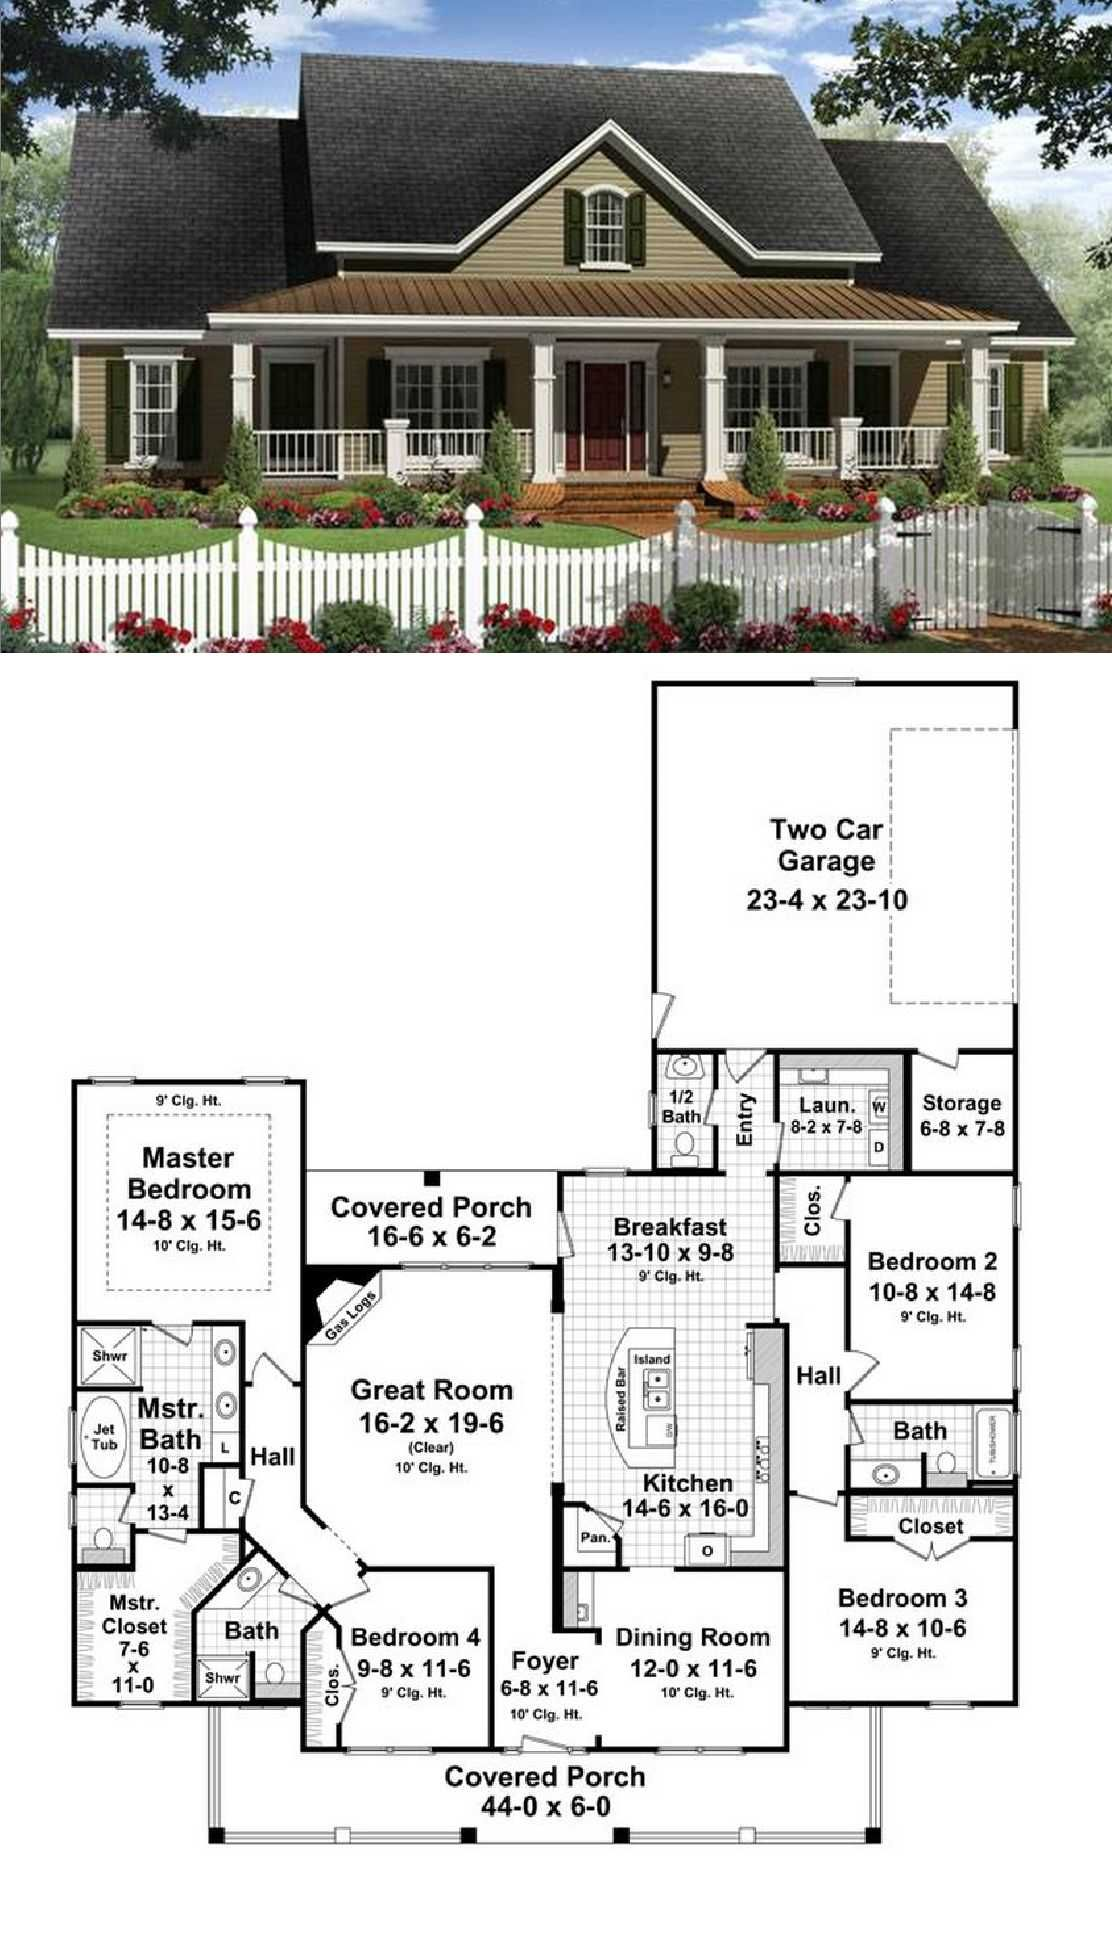 Two Story Simple Ranch Style House Awesome Two Story Simple Ranch Style House Sim 2 House Ideas I House Plans Farmhouse New House Plans Country House Plans